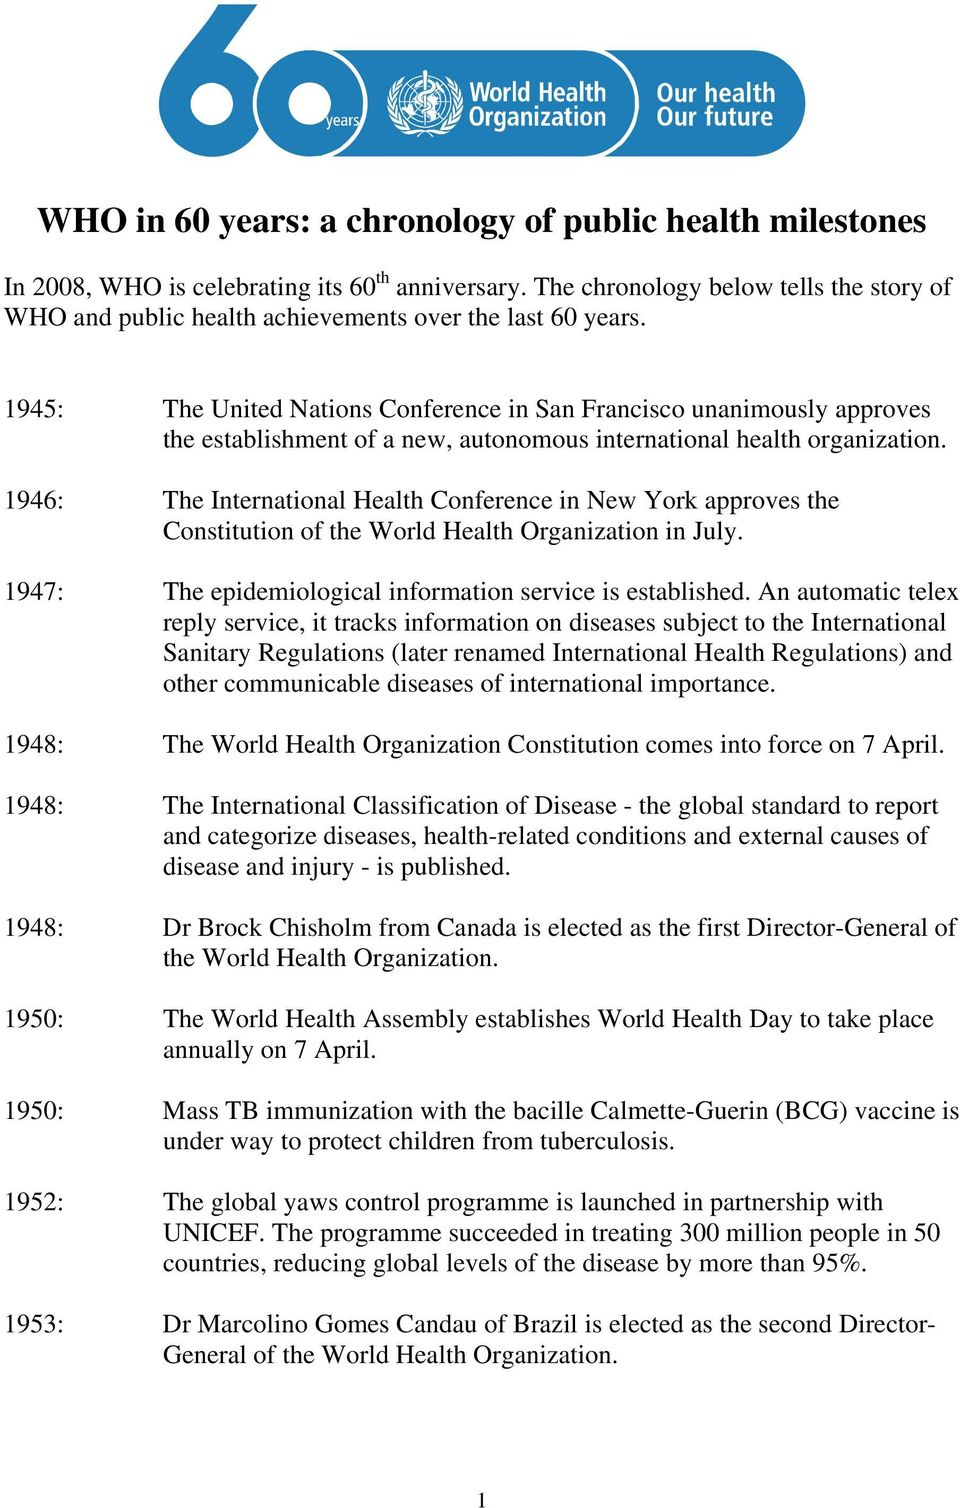 1945: The United Nations Conference in San Francisco unanimously approves the establishment of a new, autonomous international health organization.